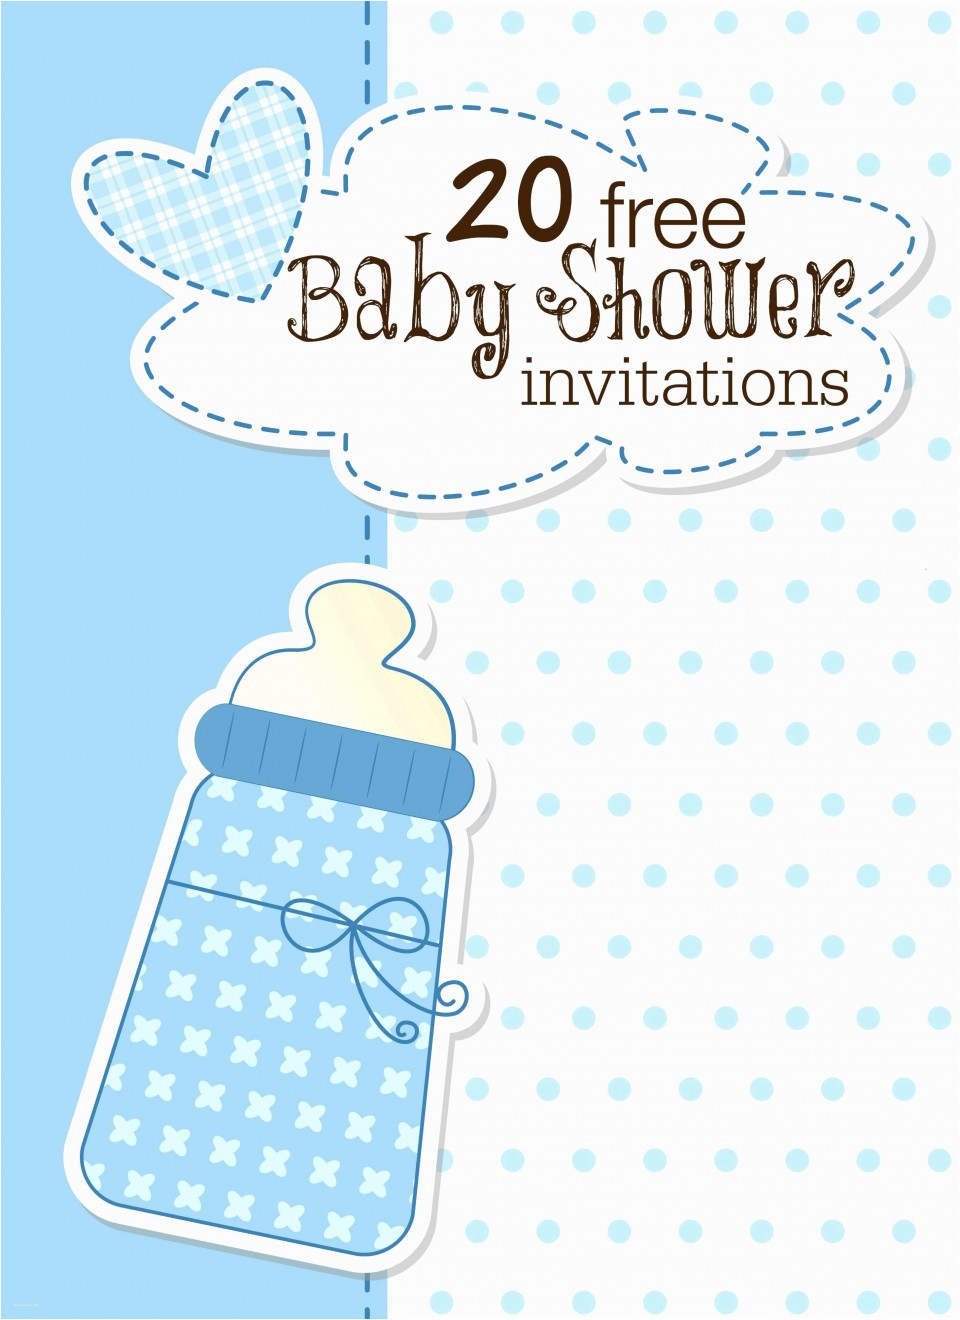 008 Archaicawful Free Baby Shower Invitation Template Idea  Printable For A Girl Microsoft Word960